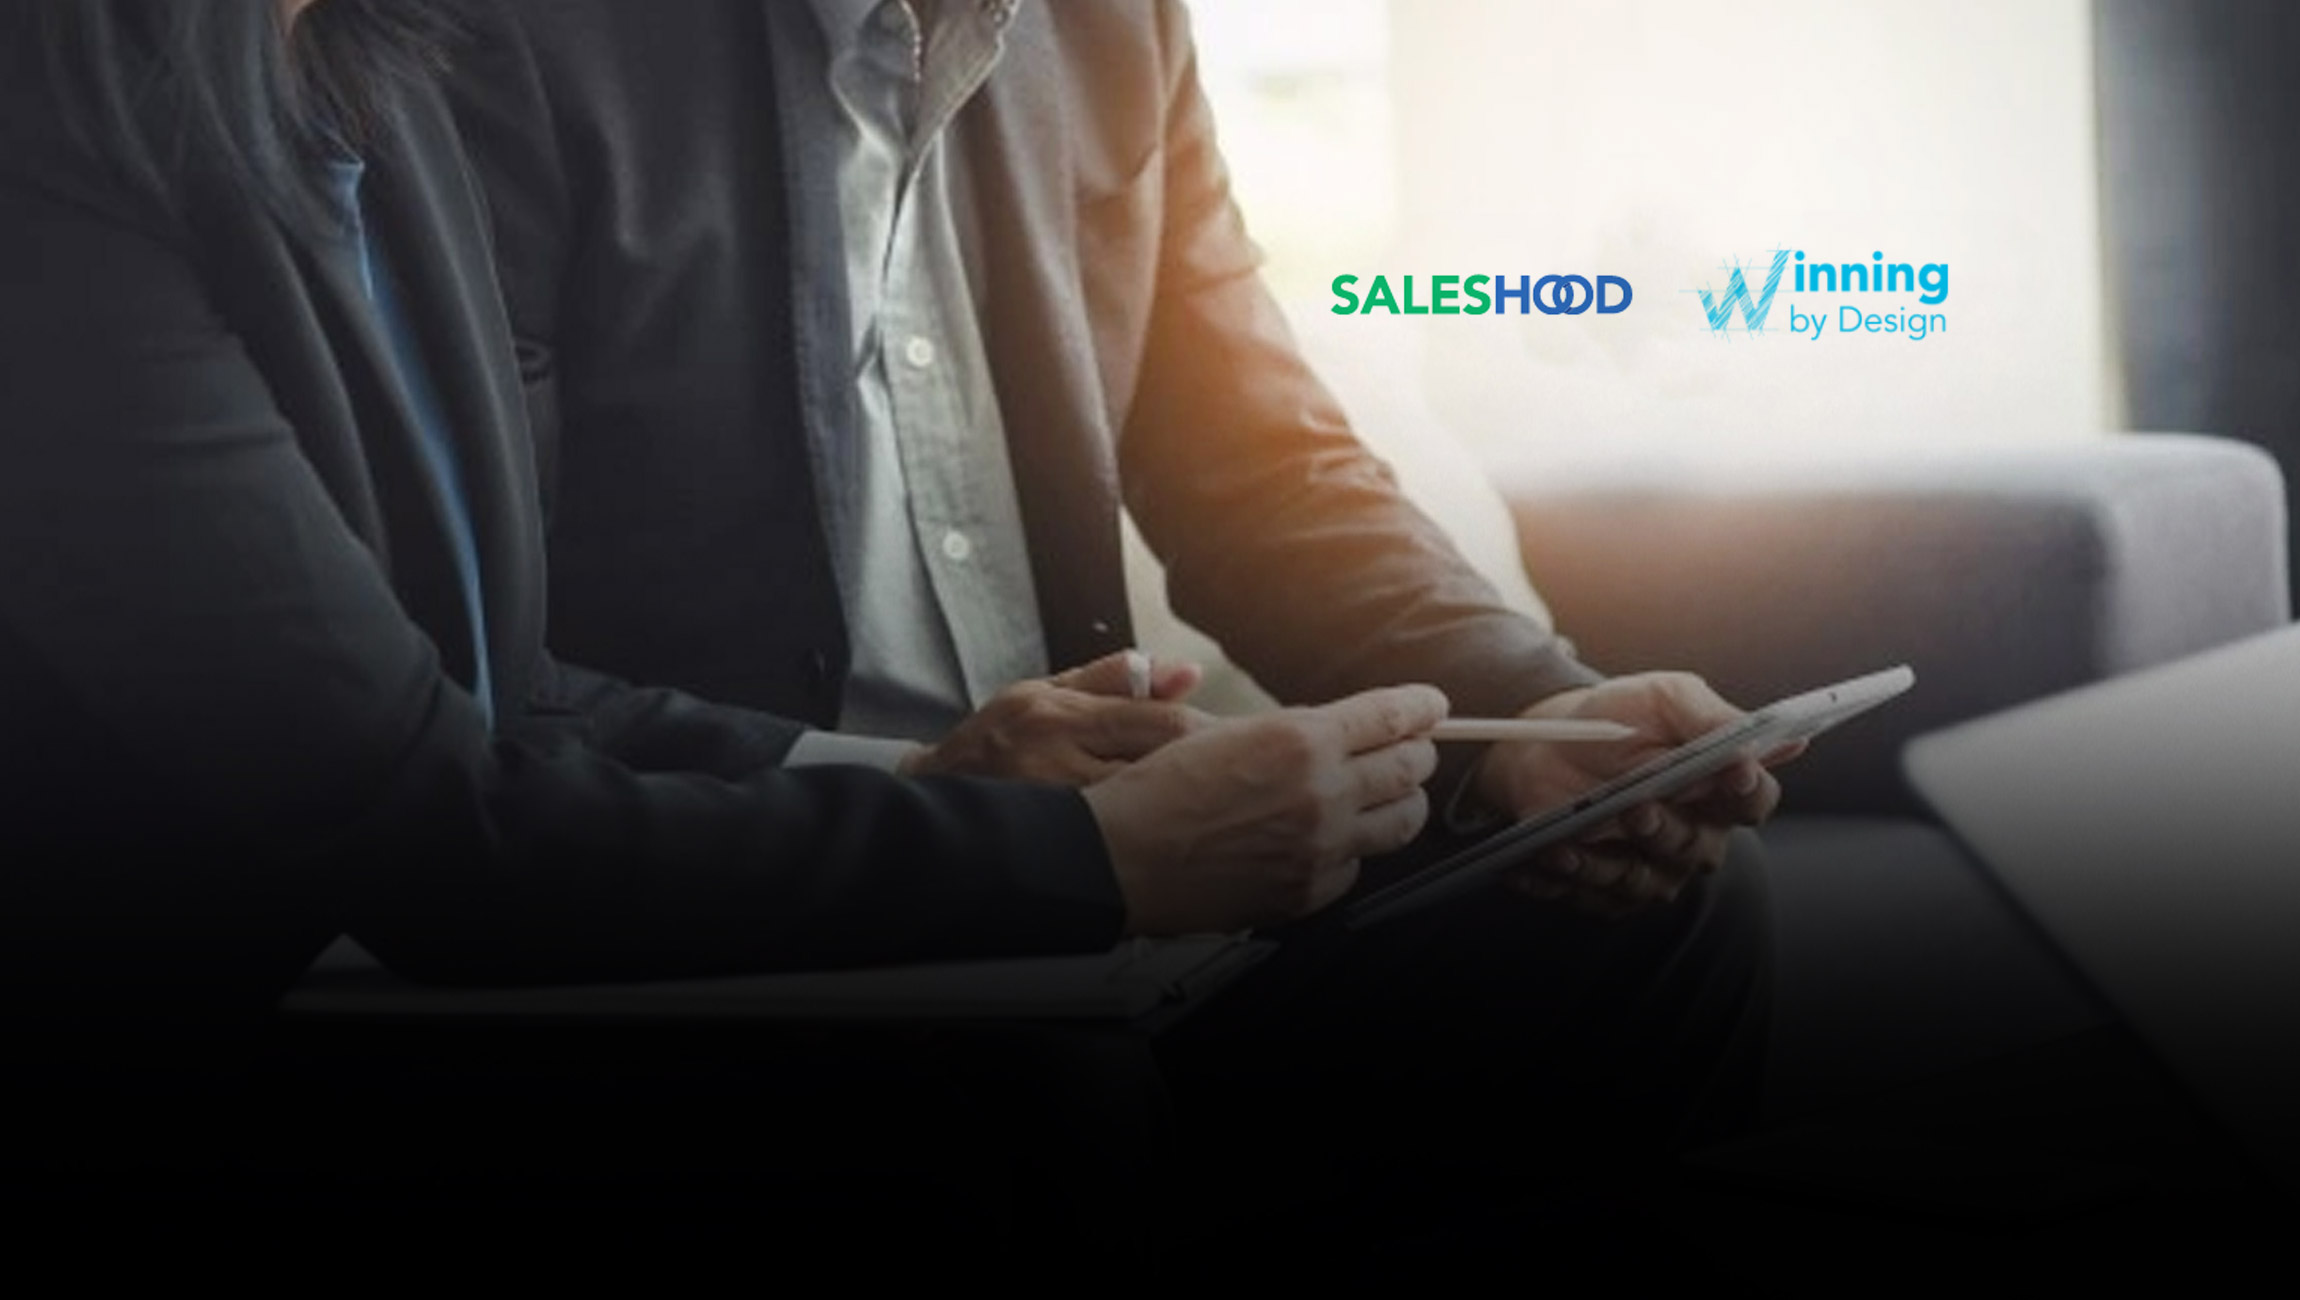 SalesHood-and-Winning-by-Design-Launch-Remote-Selling-Mastery-Coaching-Membership